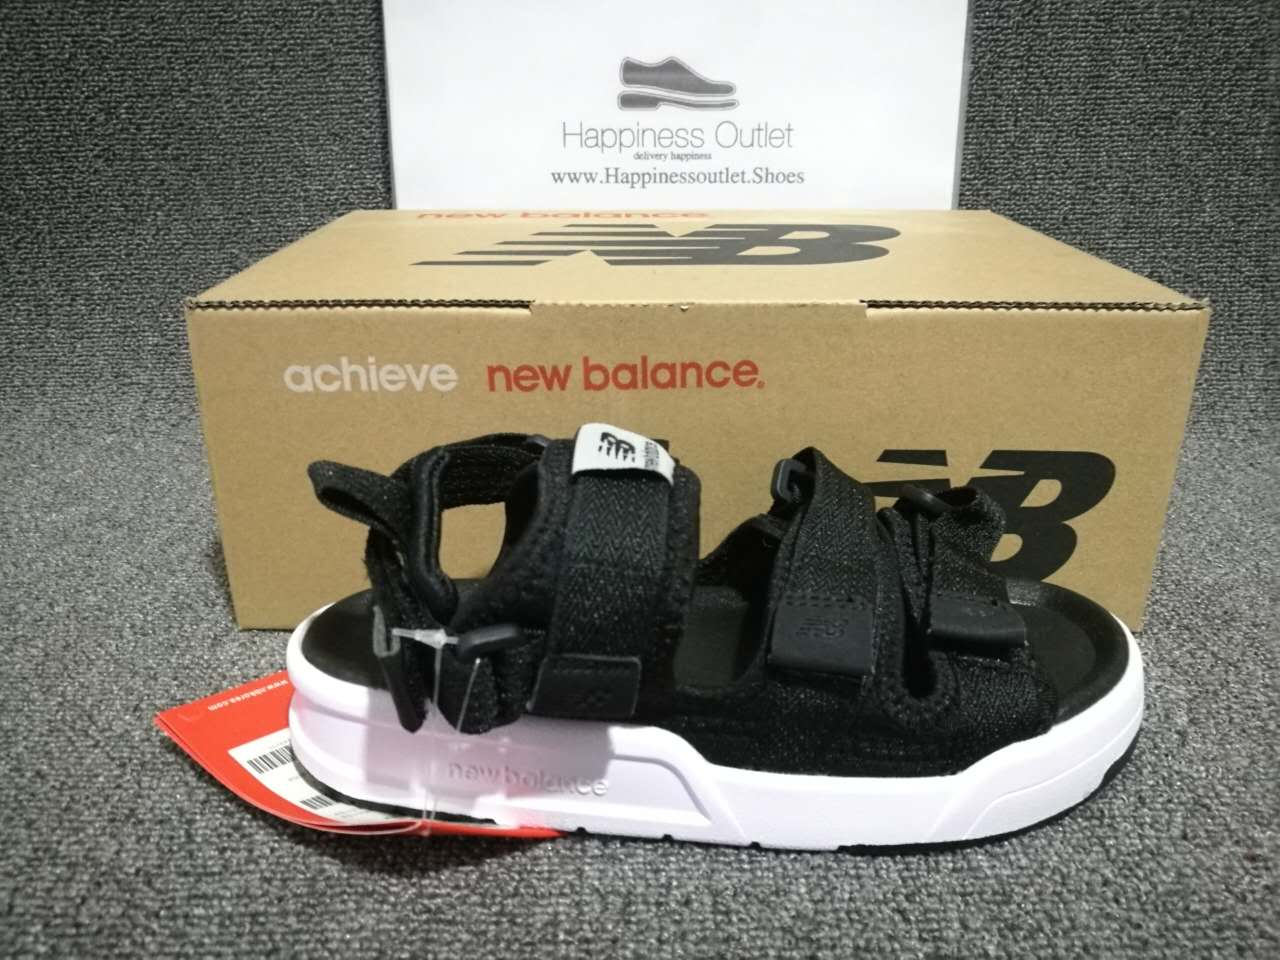 62578b15486 ... Footwear Men   Women New Arrivals New Balance New Balance Shop Man New  Balance Shop Women Newest Products Sandals Sales SHOP MEN   SHOP WOMEN    Slipper ...